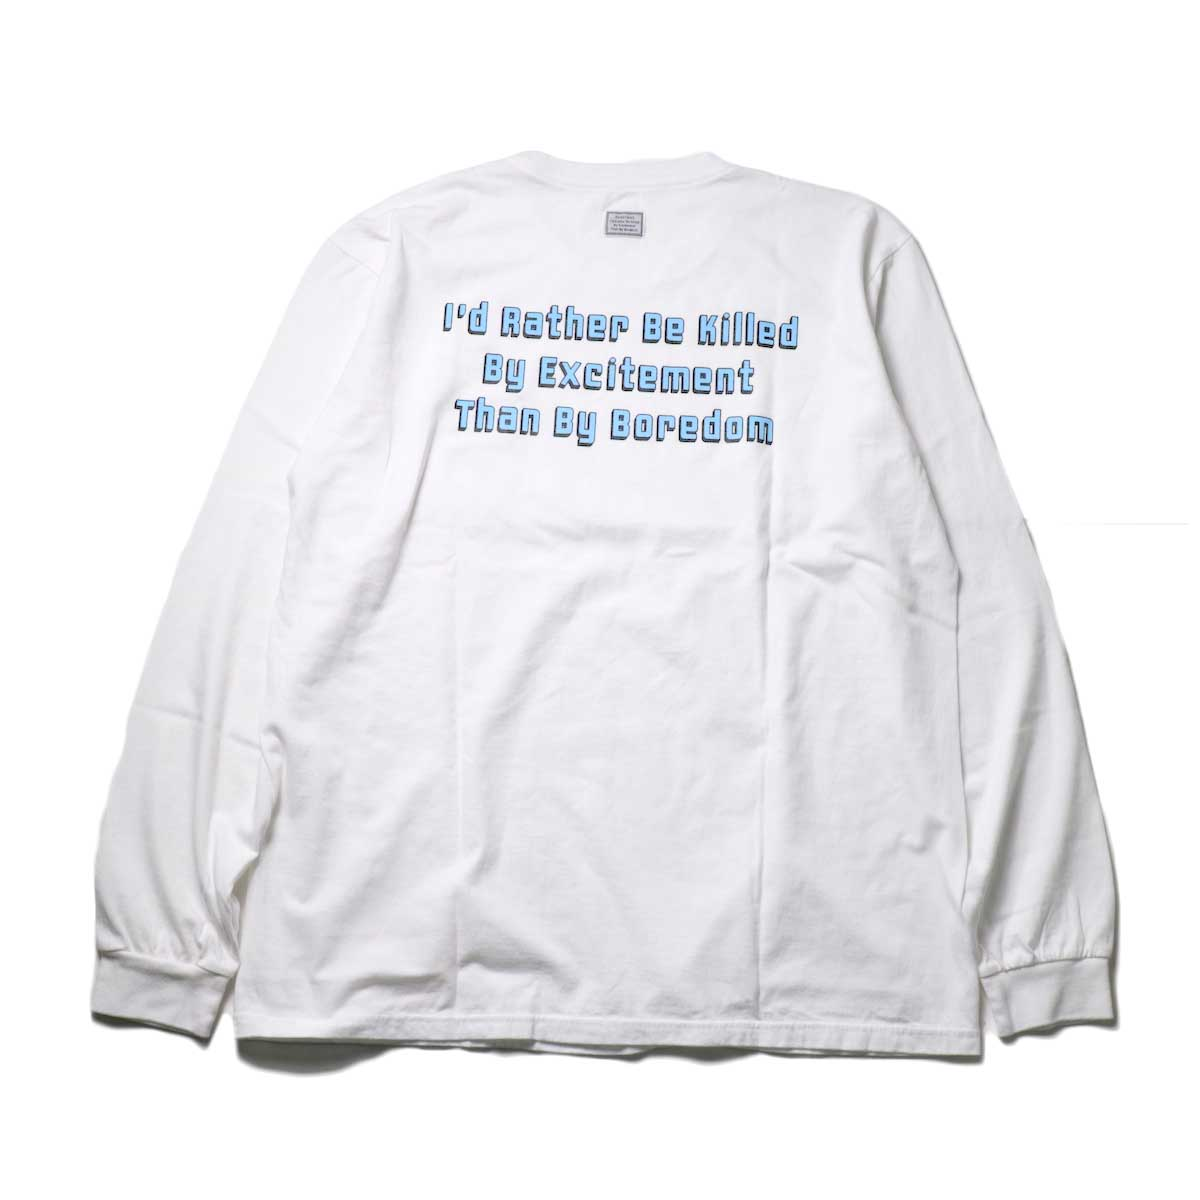 TANGTANG / ARCHIVE -SLOGAN- (White)背面